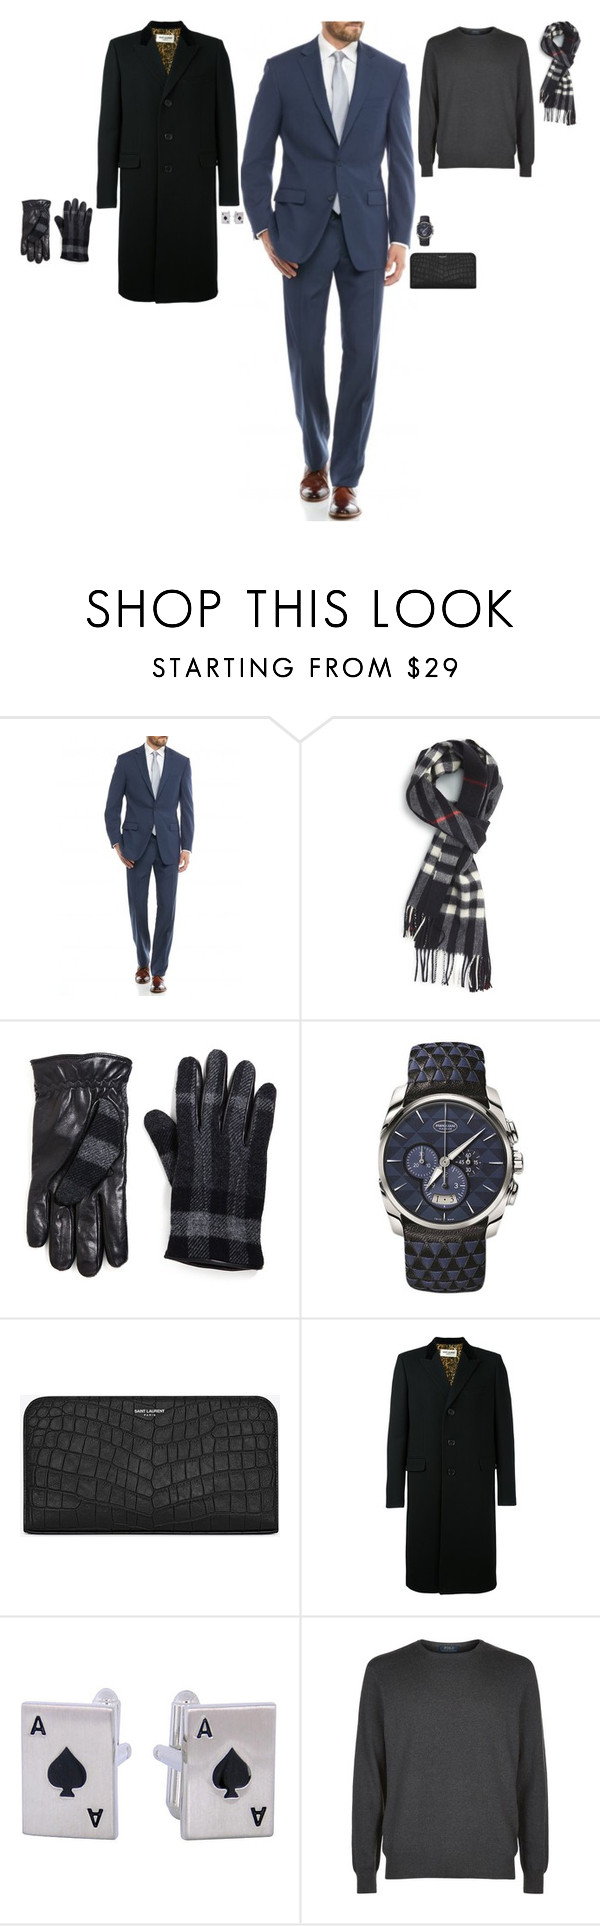 Lunch At Savva Restaurant At Metropol Hotel By Stylev Liked On Polyvore Featuring Austin Reed Burberry Parmigian Clothes Design Menswear Perfect Clothing